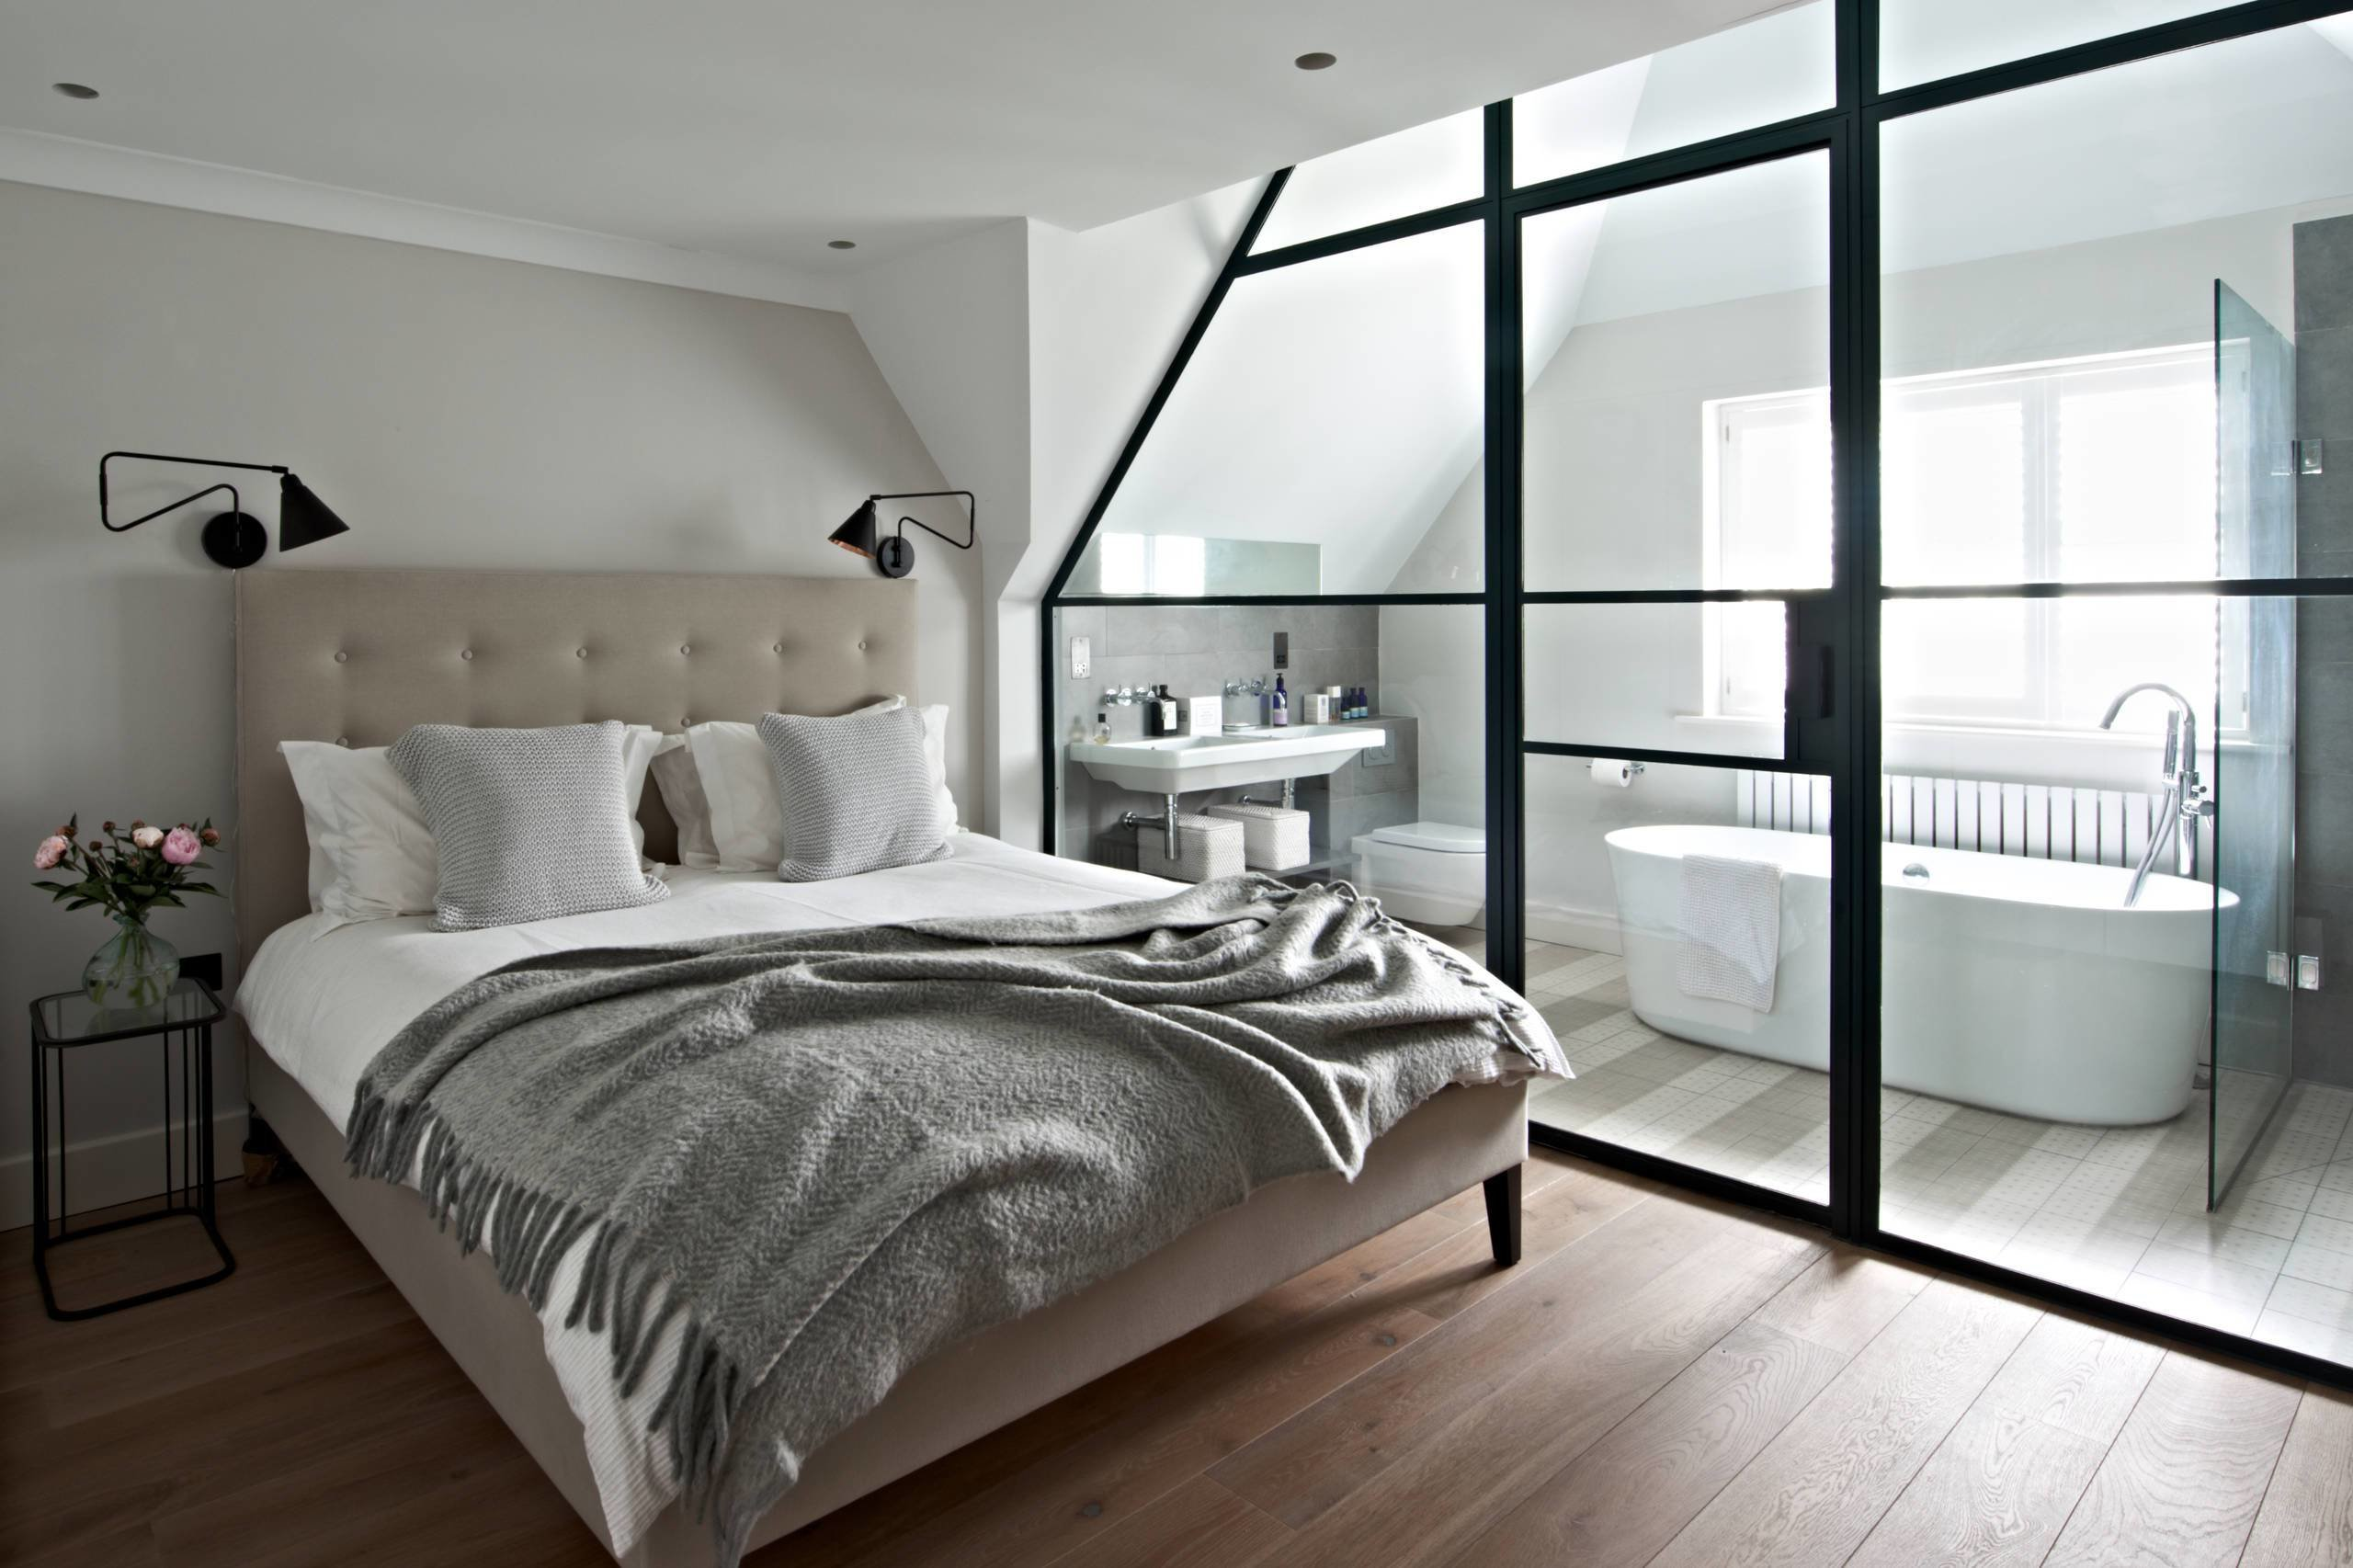 Best 16 Luxurious Modern Bedroom Designs Flickering With Elegance With Pictures